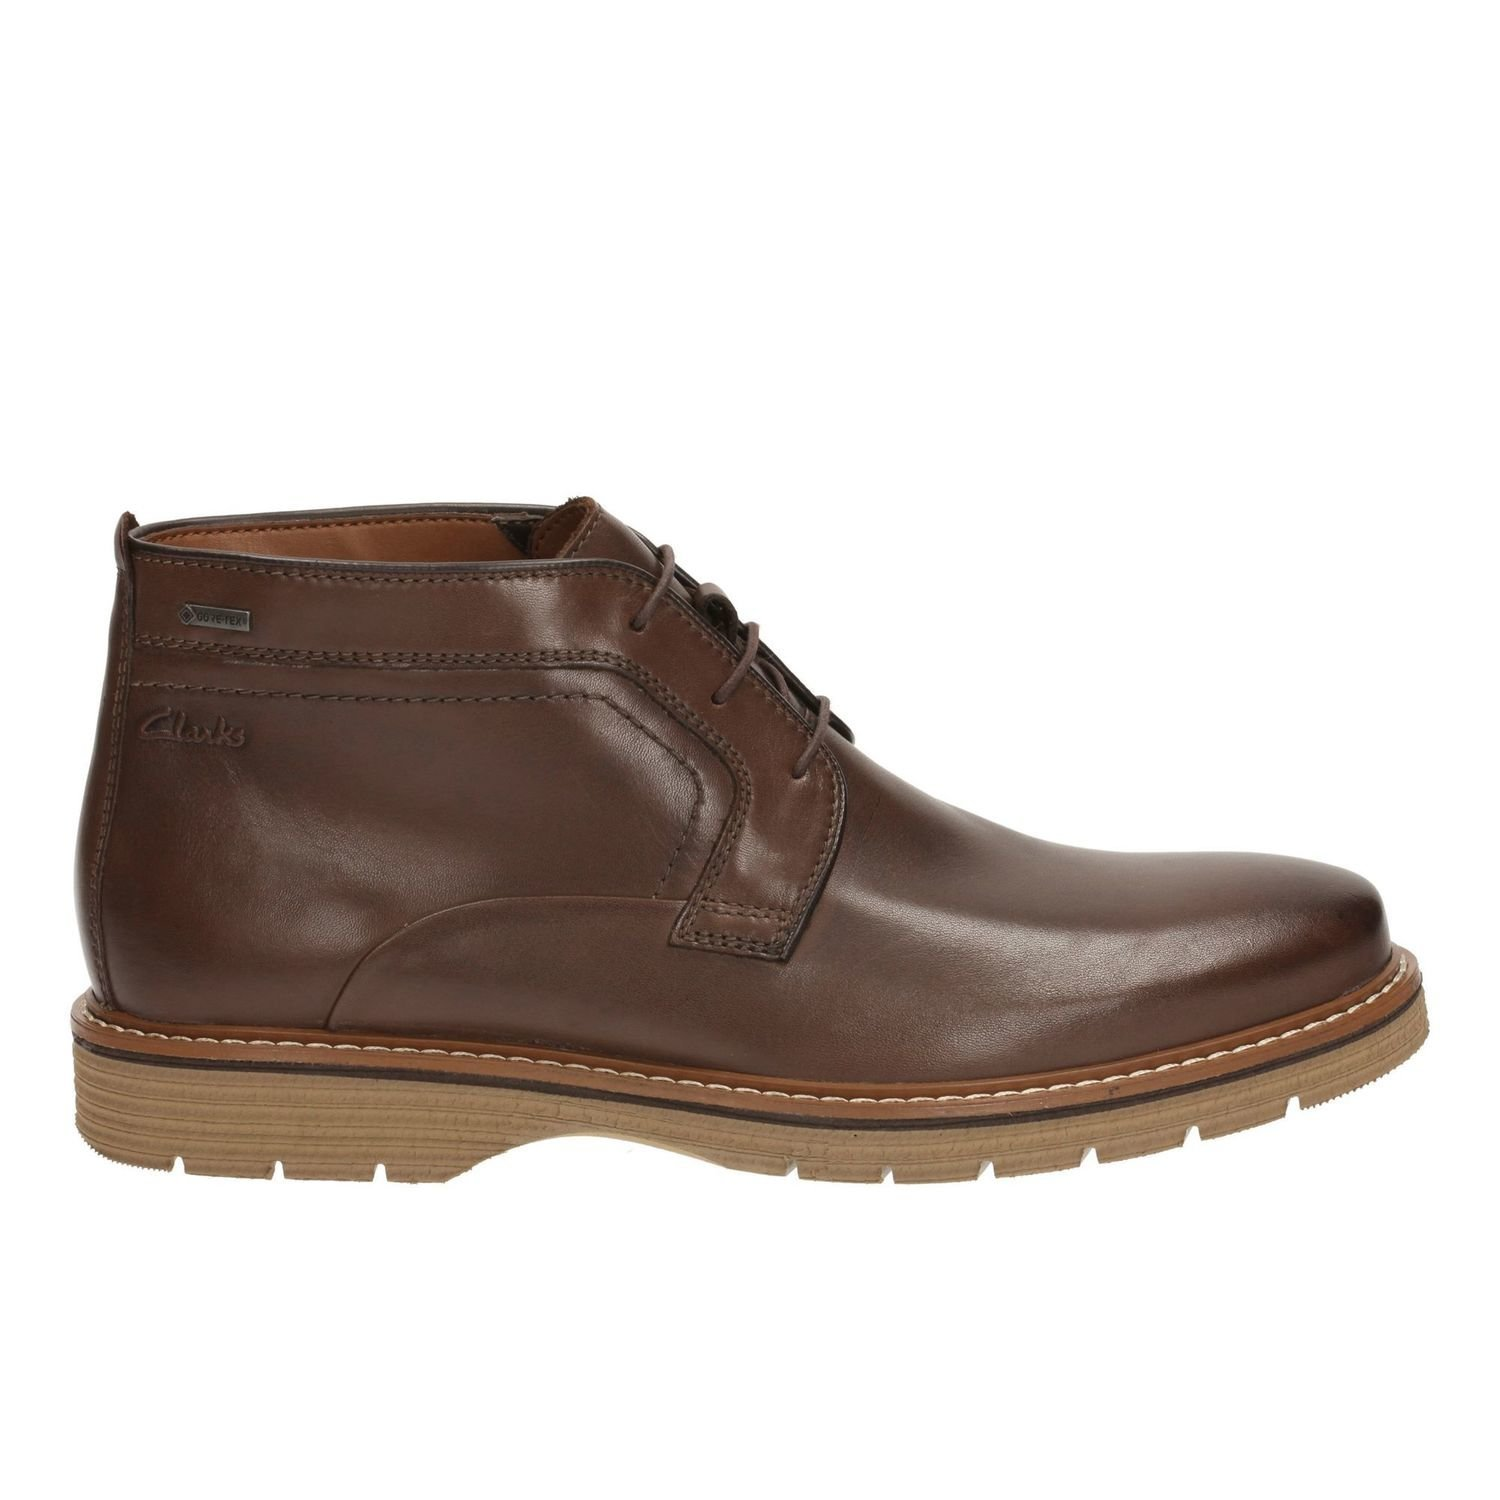 Botas Newkirk Up GTX Cuero Marron TN-2380502